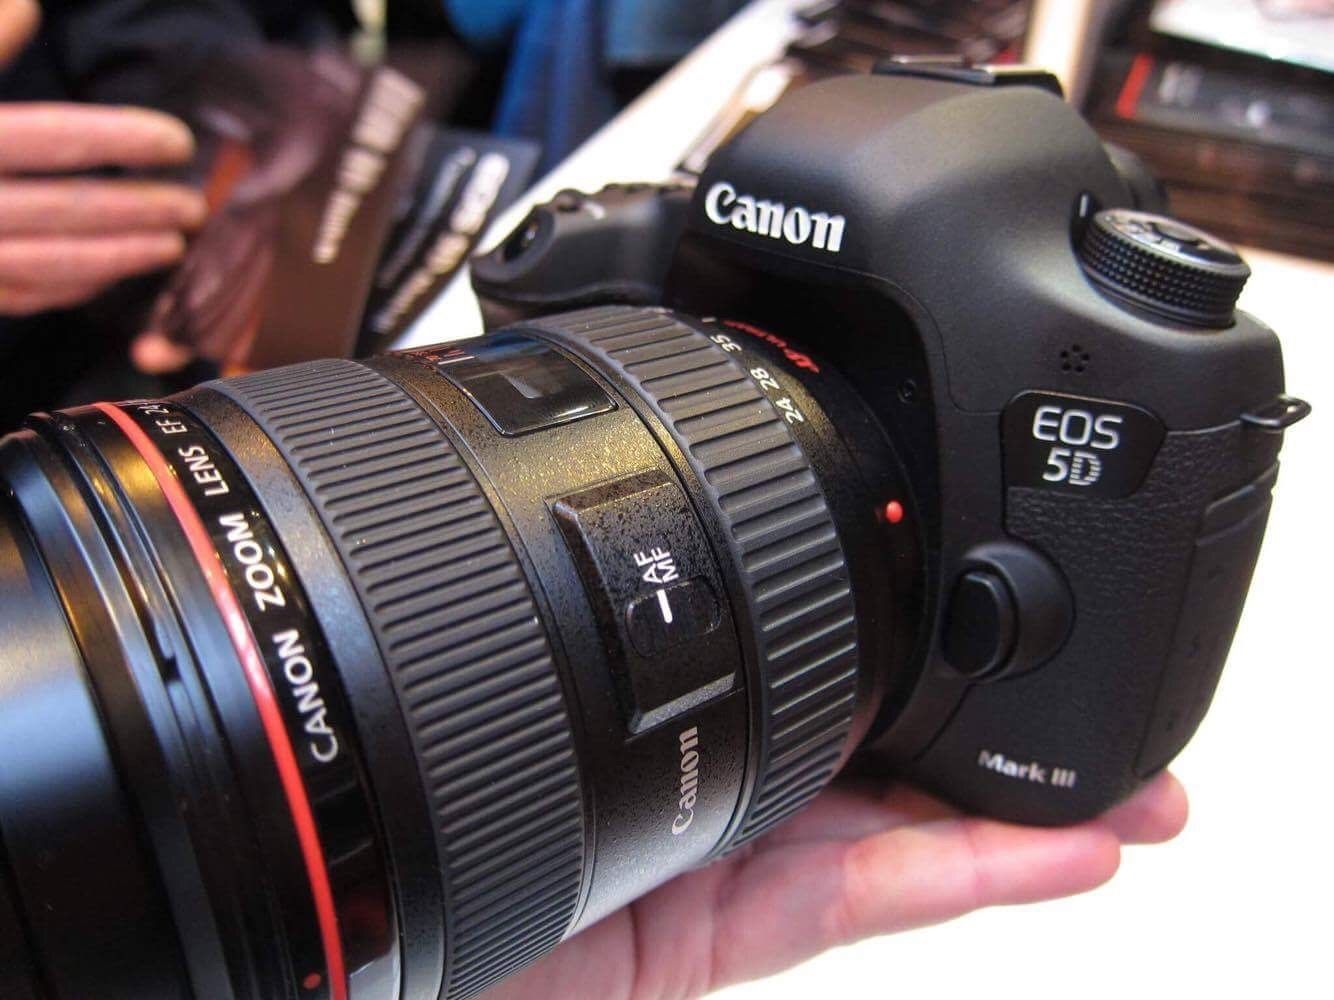 Canon EOS 5D Mark III (EF 24-105mm F4L IS USM)